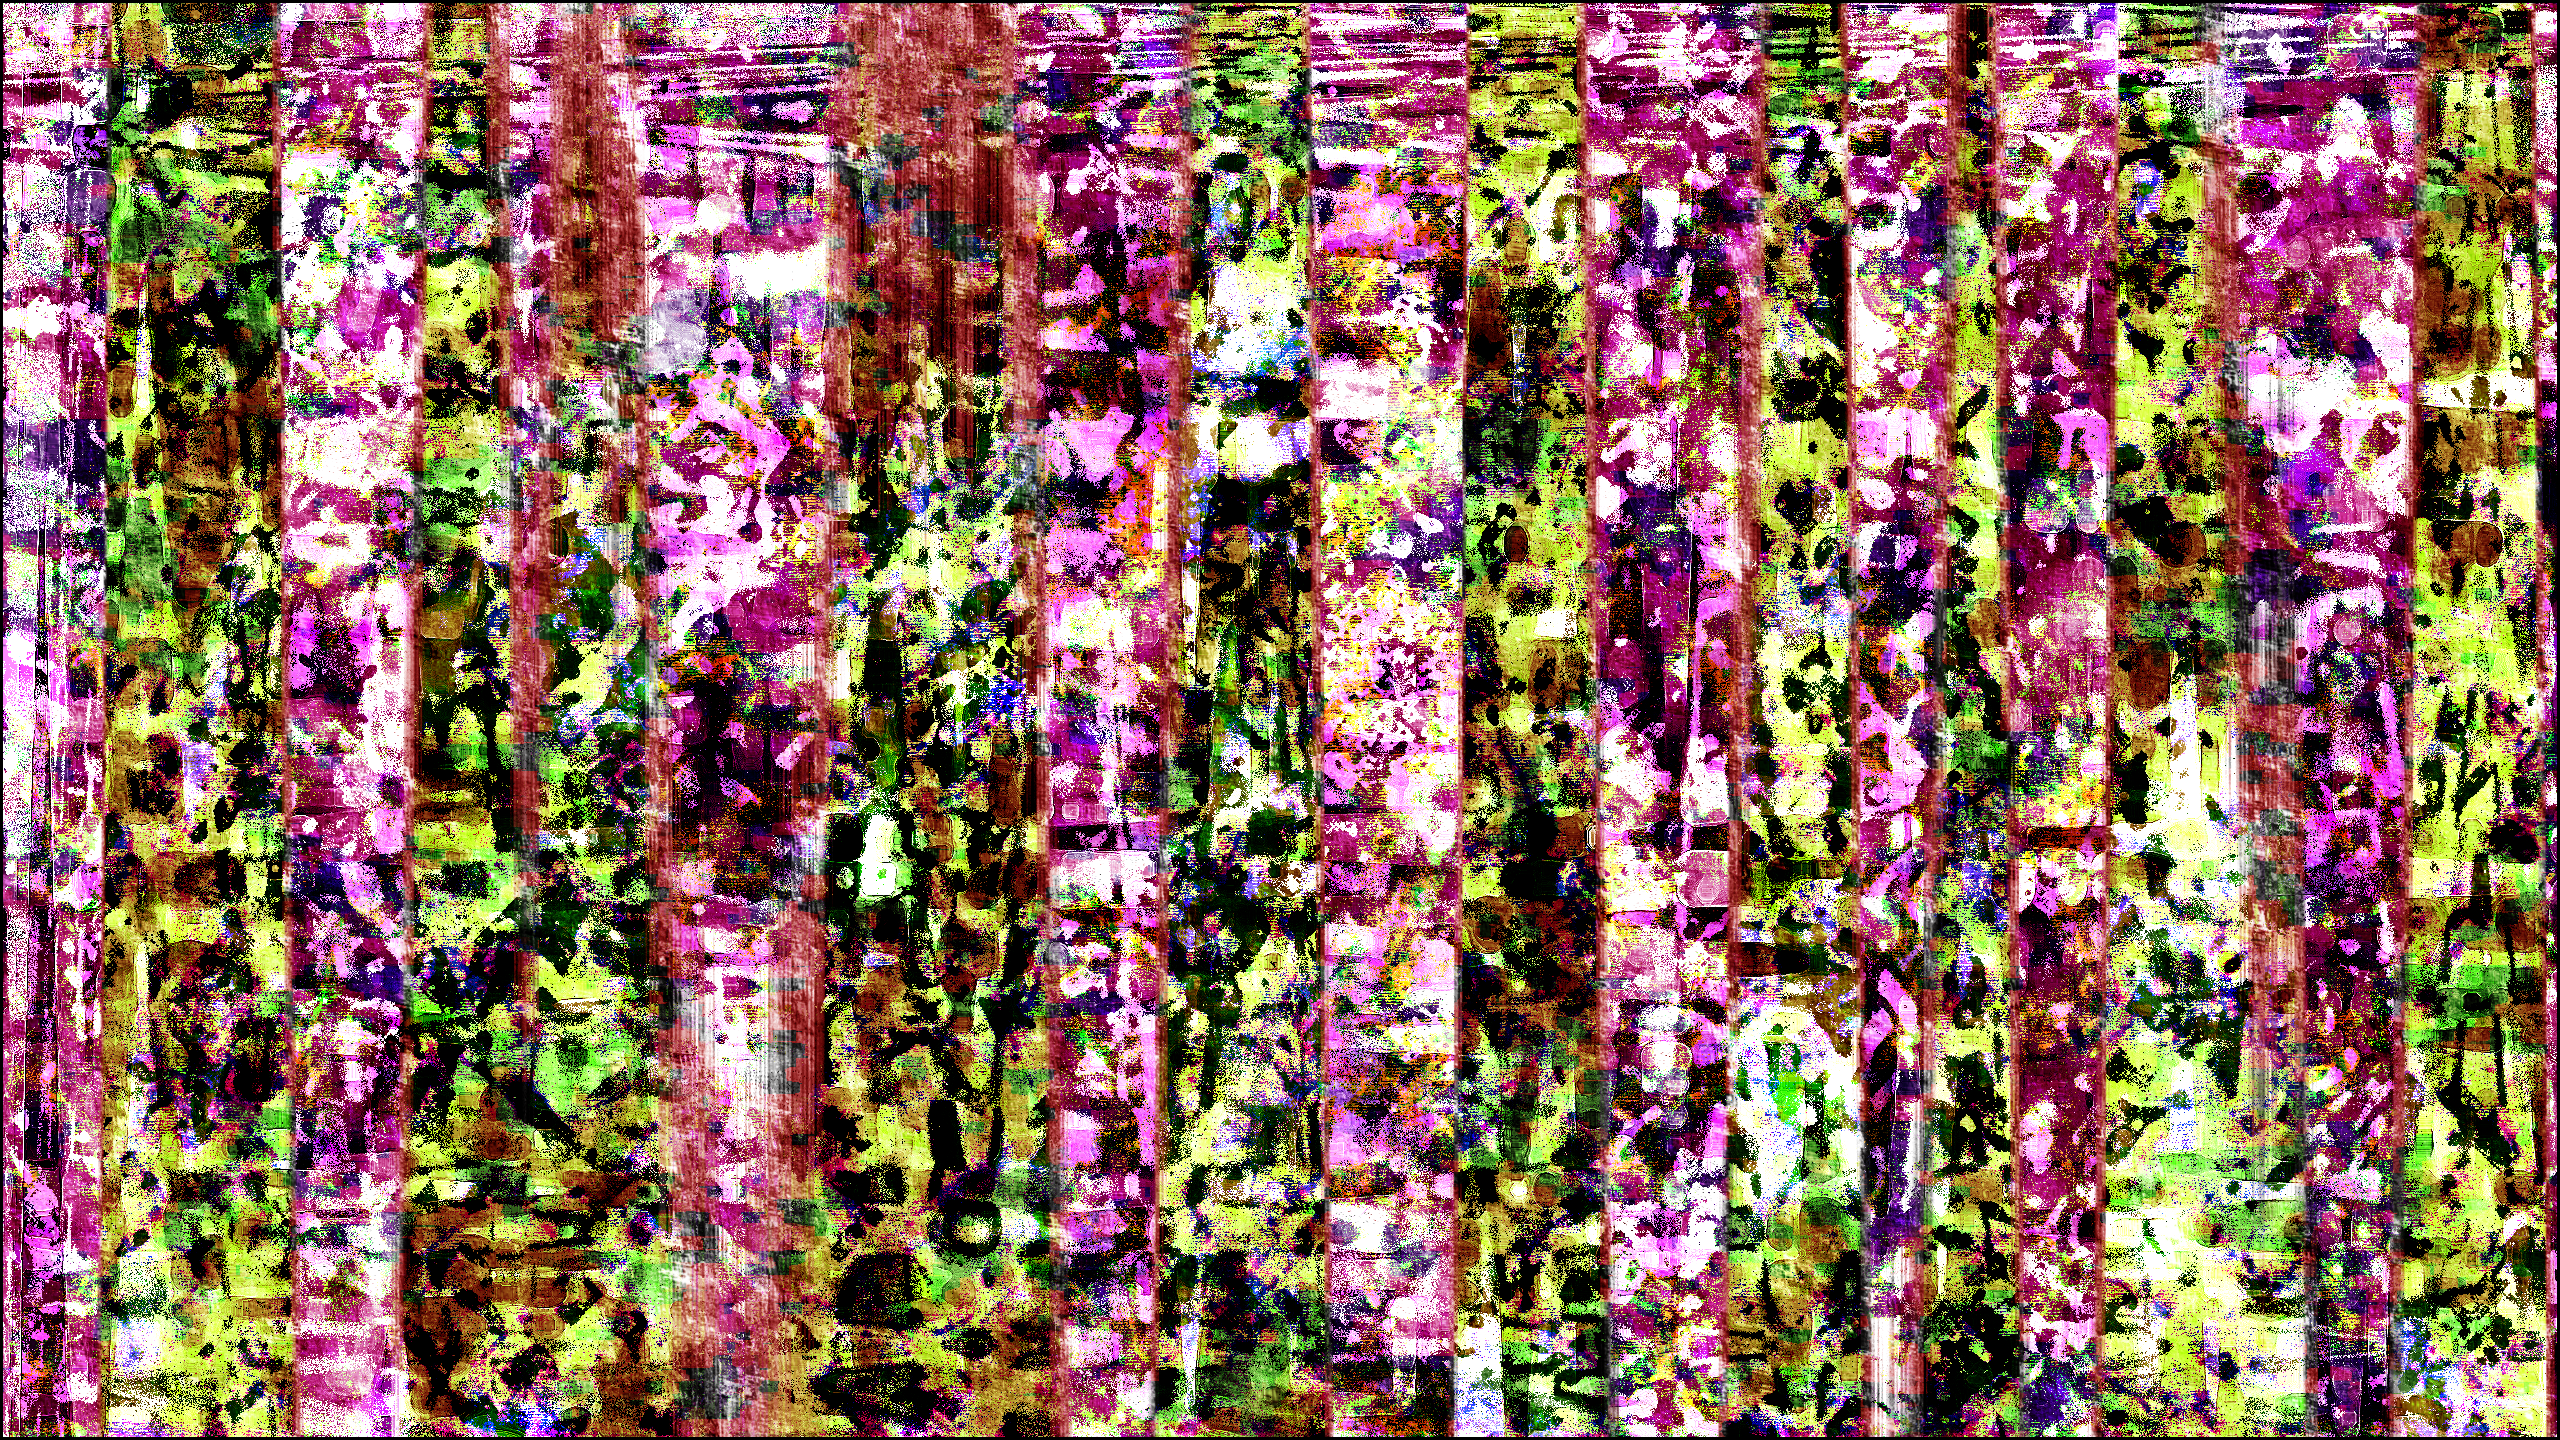 Abstract Digital Art Trippy Psychedelic Brightness 2560x1440